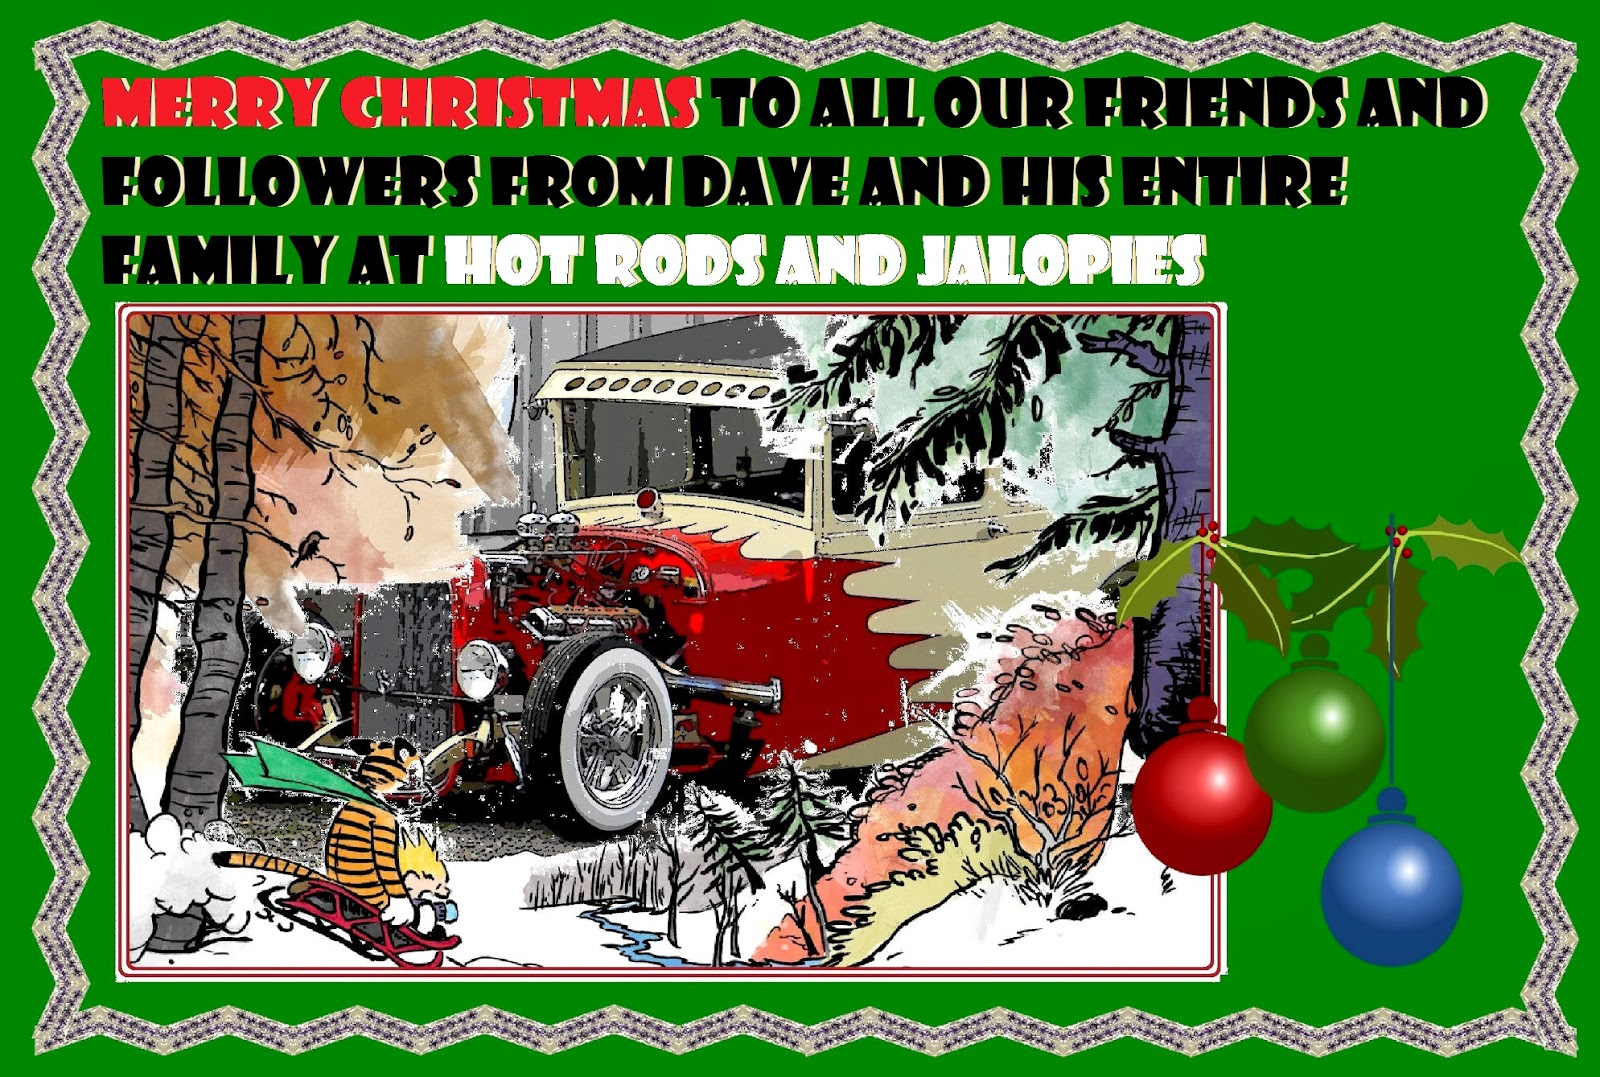 HOT RODS and JALOPIES: May the Peace and Joy of Christmas, and ...